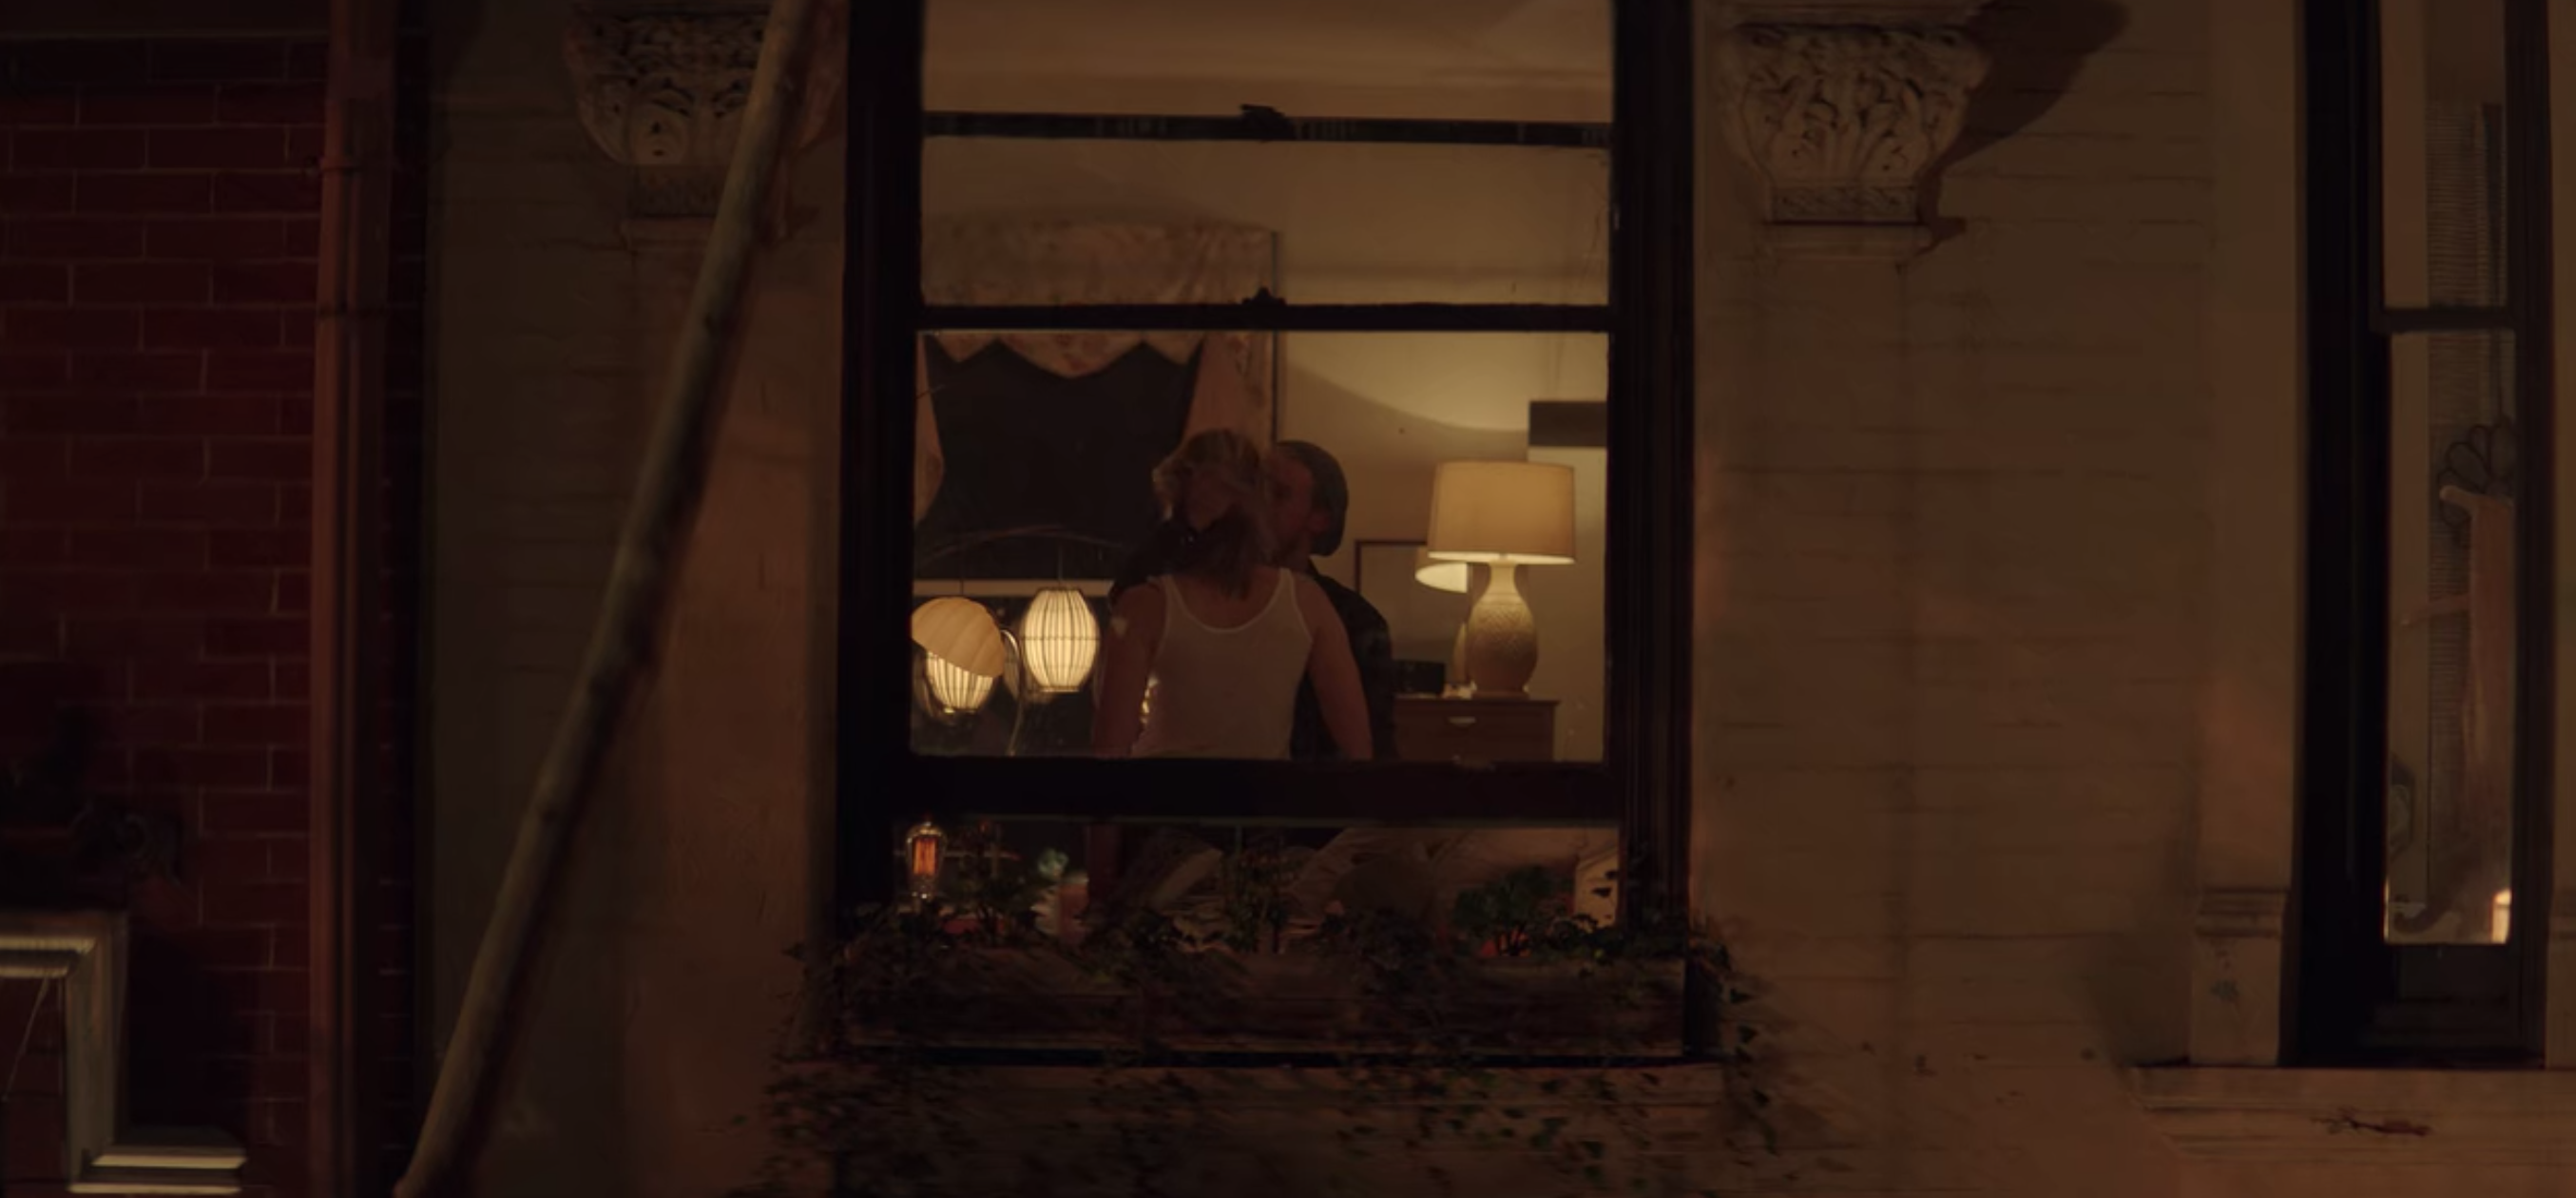 A man and woman are seen getting intimate from outside of a window